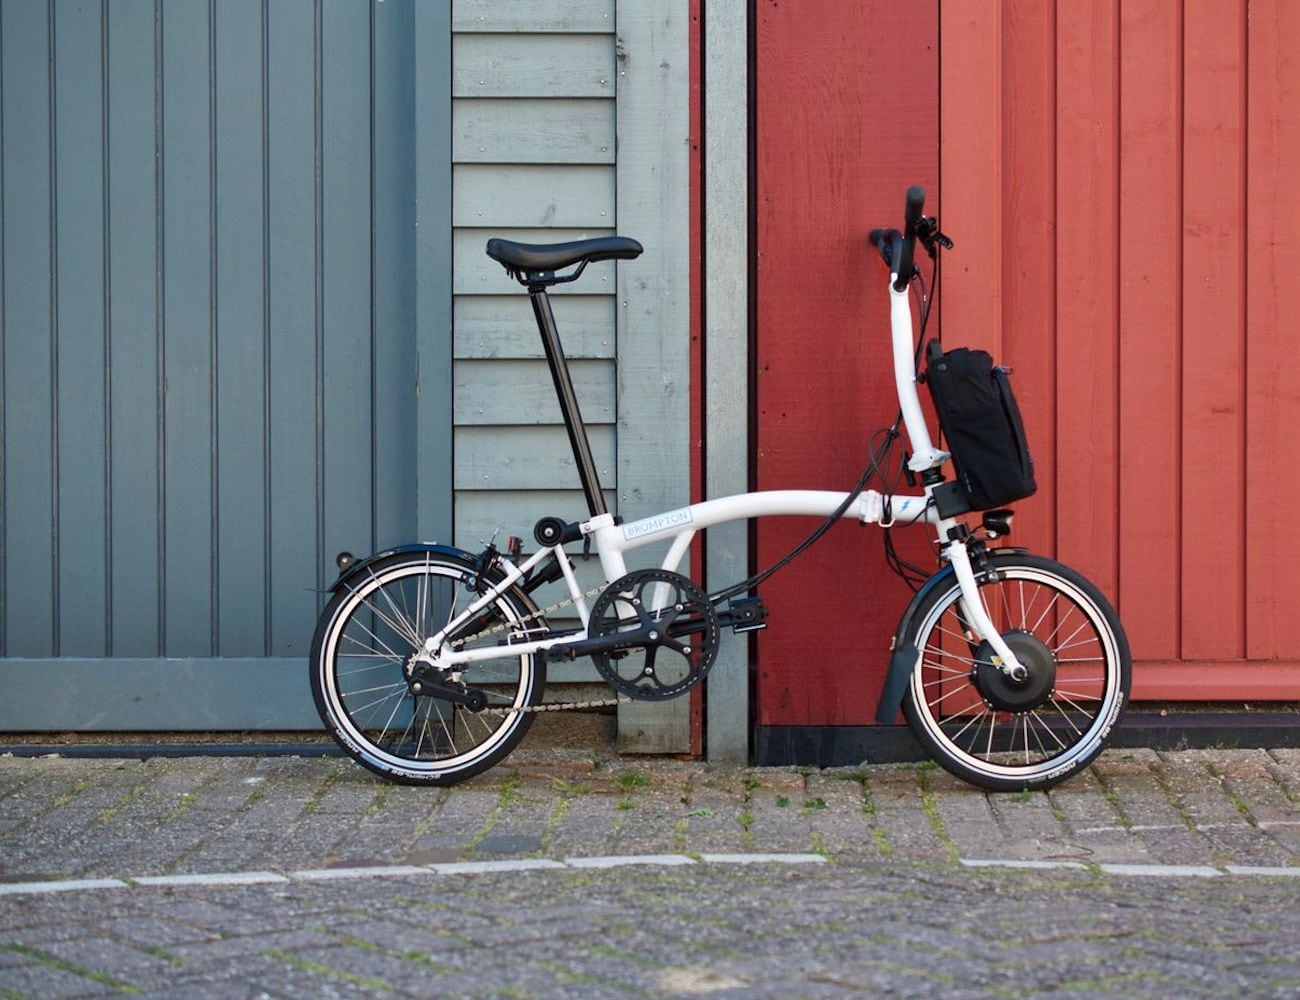 7d43a321910 Brompton Electric Lightweight Compact Folding Bike collapses for easy  portability